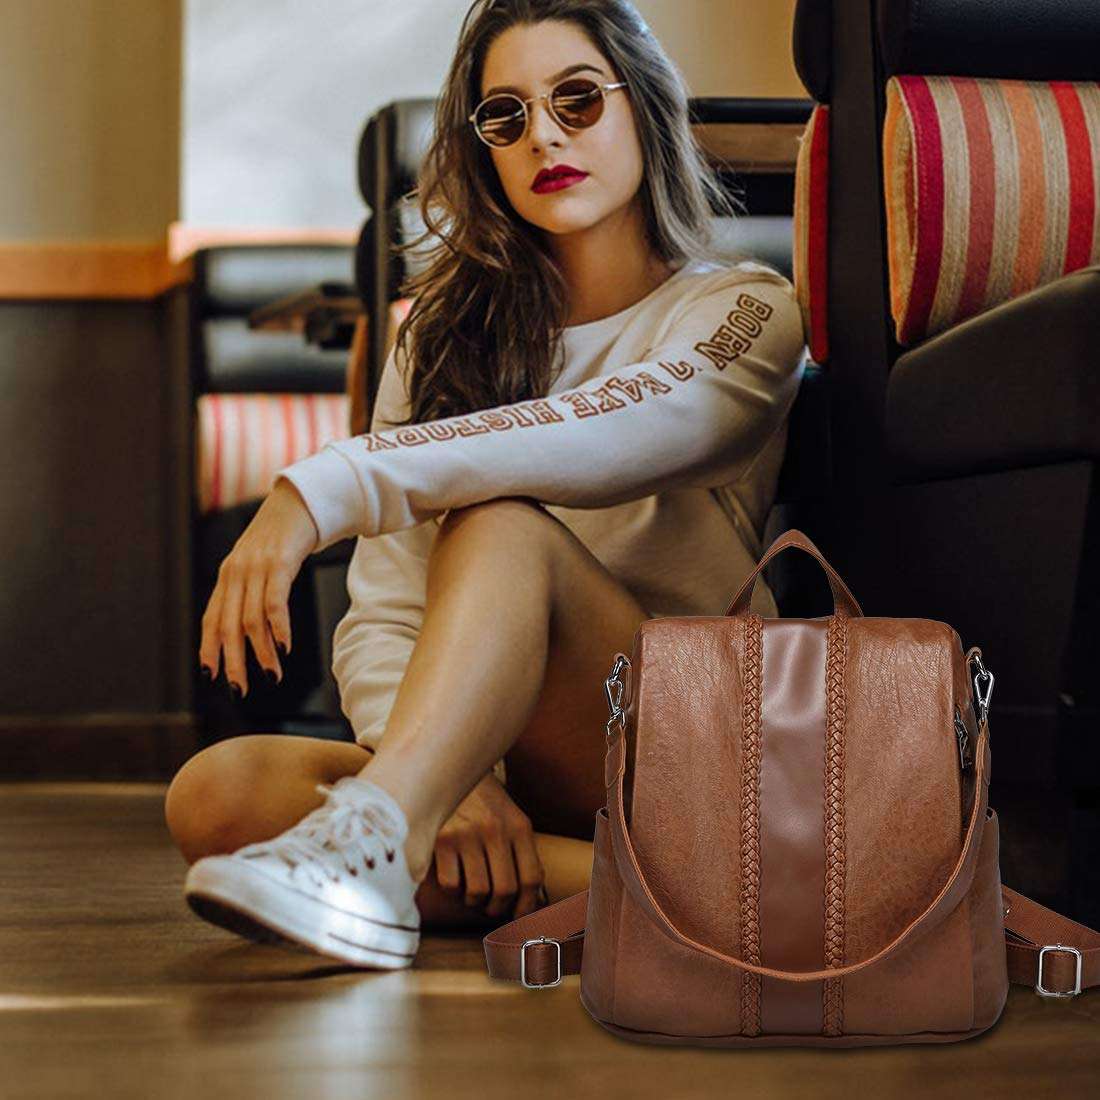 Backpack Purse for Women,VASCHY Fashion Faux Leather Convertible Anti-theft Backpack for Ladies with Vintage Weave Brown by VASCHY (Image #7)